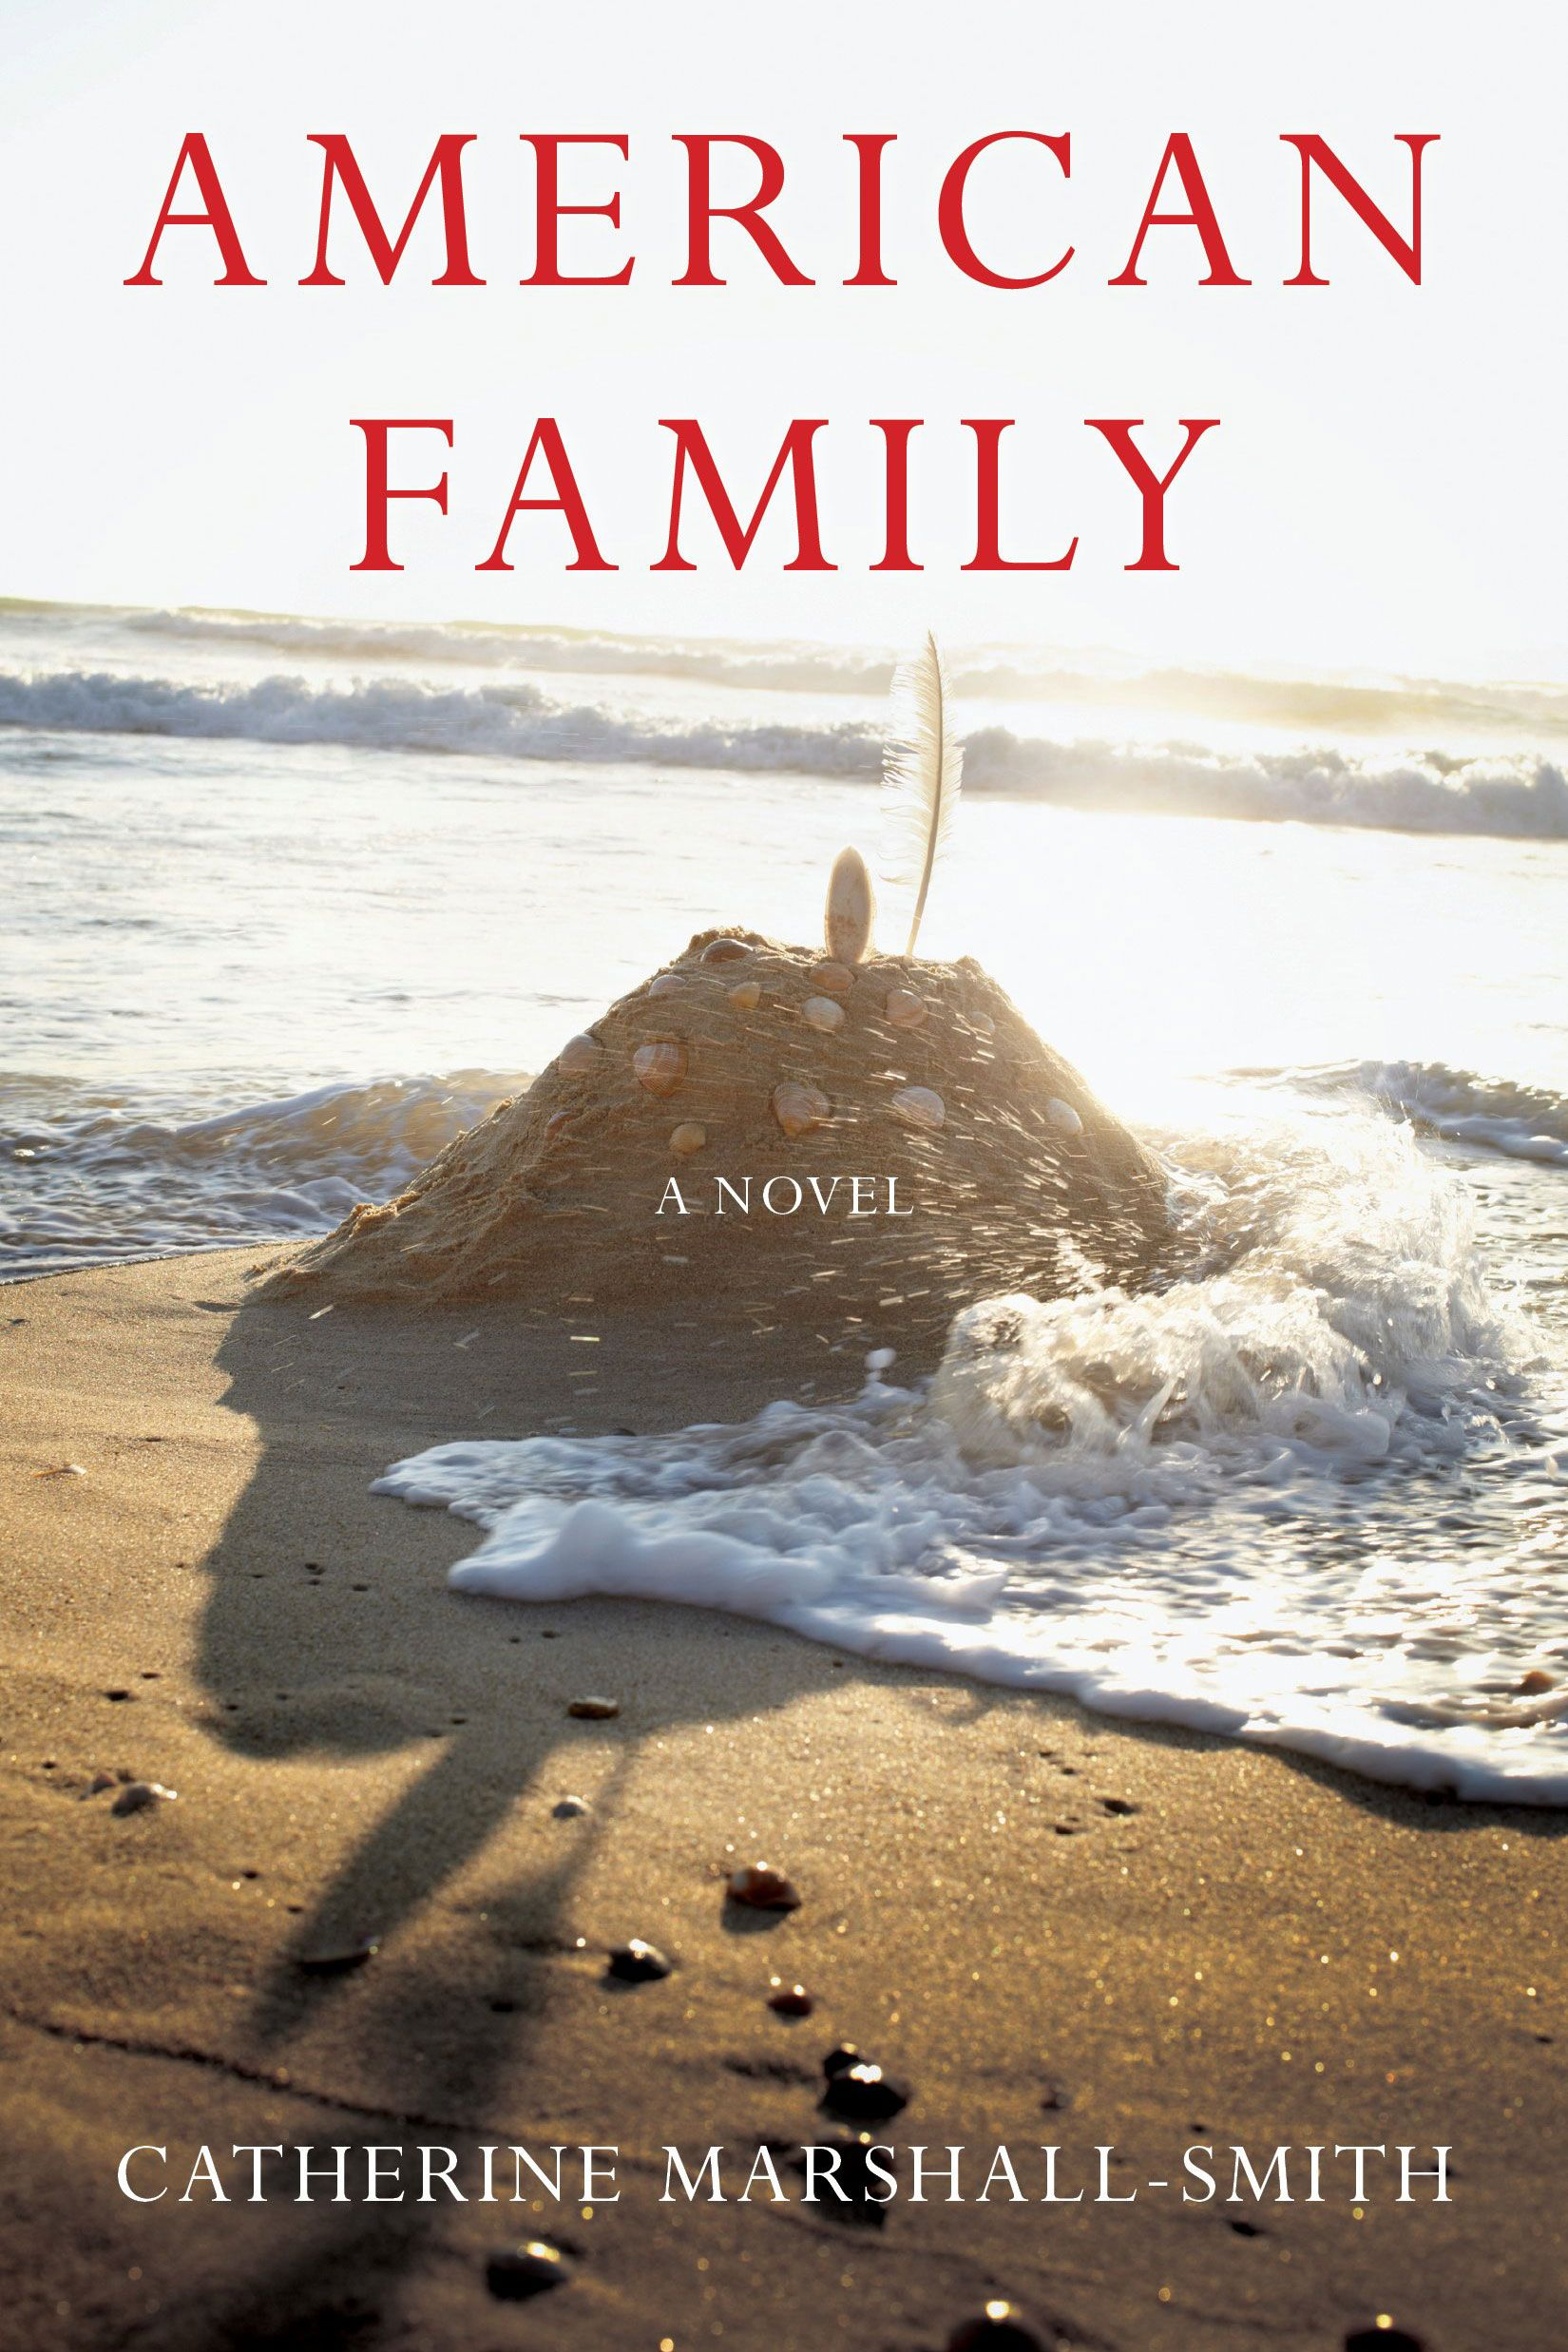 "<p>Not all American family stories involve white picket fences and annual family vacations on the beach. A poignant literary pageant of custody battles, alcoholism, religious restraints, and family turmoil, this tremendously moving read will leave you in bouts of feels all summer long.</p><p><strong data-verified=""redactor"" data-redactor-tag=""strong""><a href=""https://www.amazon.com/American-Family-Novel-Catherine-Marshall-Smith/dp/1631521632/ref=sr_1_1?s=books&ie=UTF8&qid=1490620901&sr=1-1&keywords=American+Family+Catherine&tag=redbook_auto-append-20"" target=""_blank"" class=""slide-buy--button"" data-tracking-id=""recirc-text-link"">BUY NOW</a></strong><br></p>"